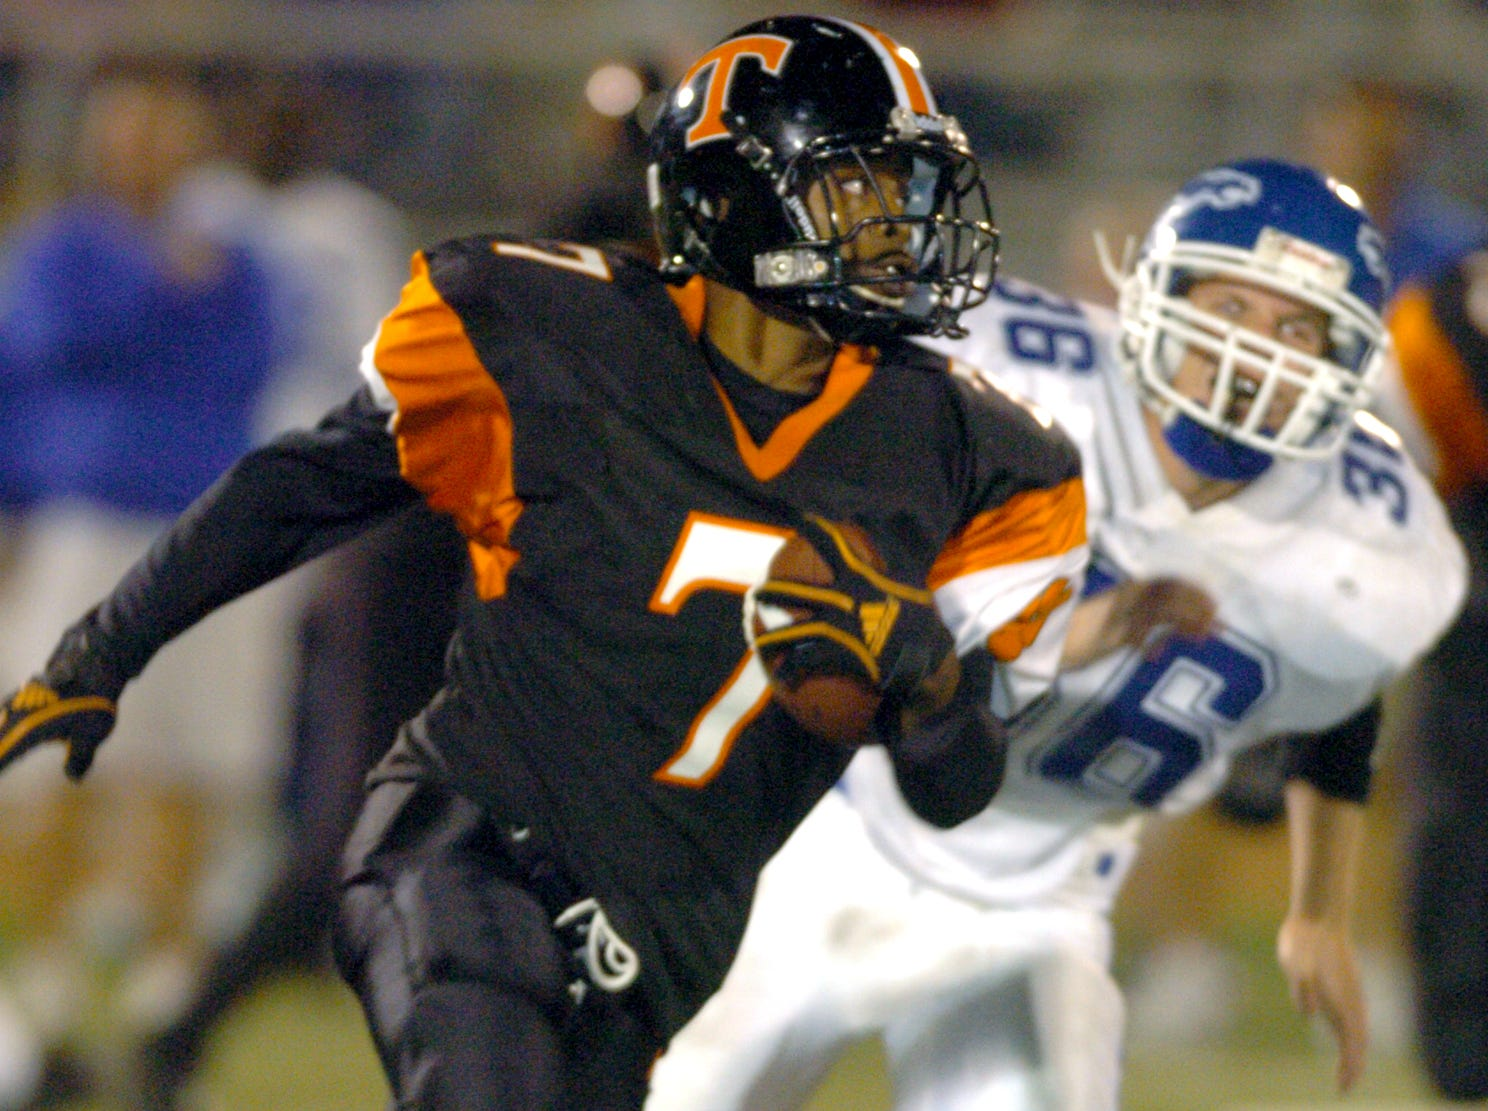 Union-Endicott's Jermaine Thomas runs with the ball after a successful interception as Horseheads' Brian Grose gives chase in the third quarter of a 2005 game at UE.